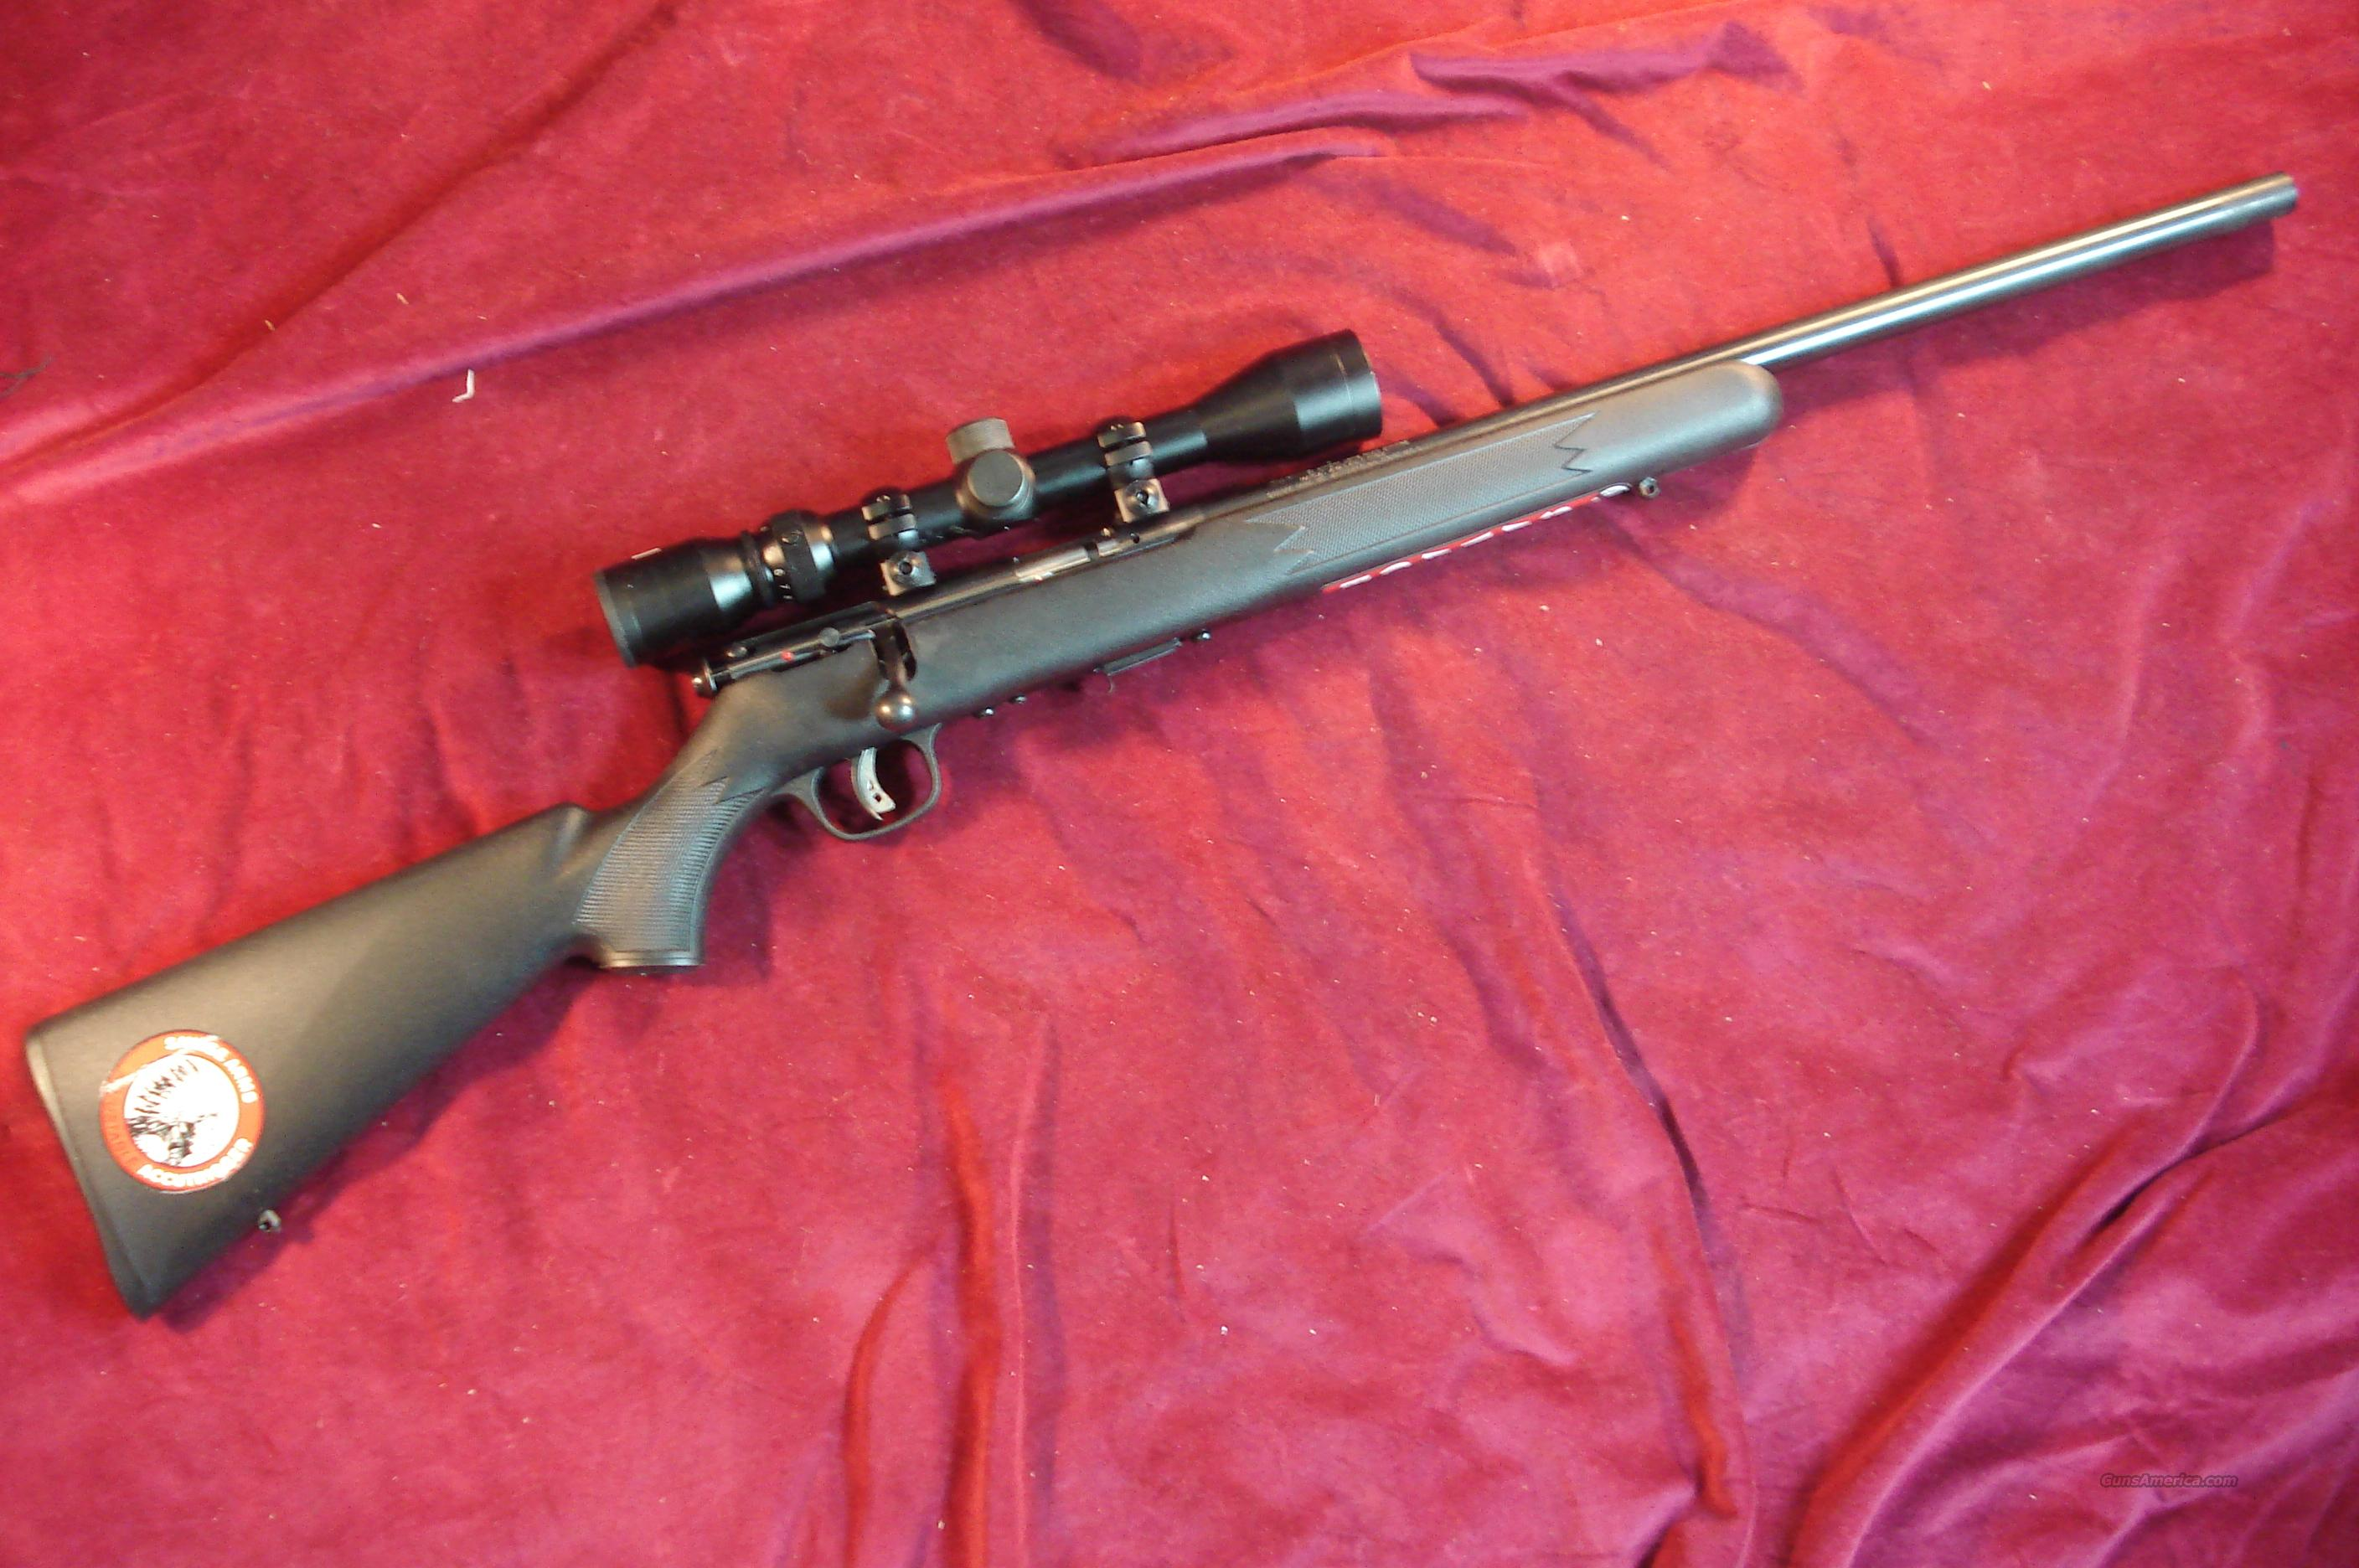 SAVAGE MKII 22LR  BOLT ACTION W/SCOPE NEW  Guns > Rifles > Savage Rifles > Accutrigger Models > Sporting